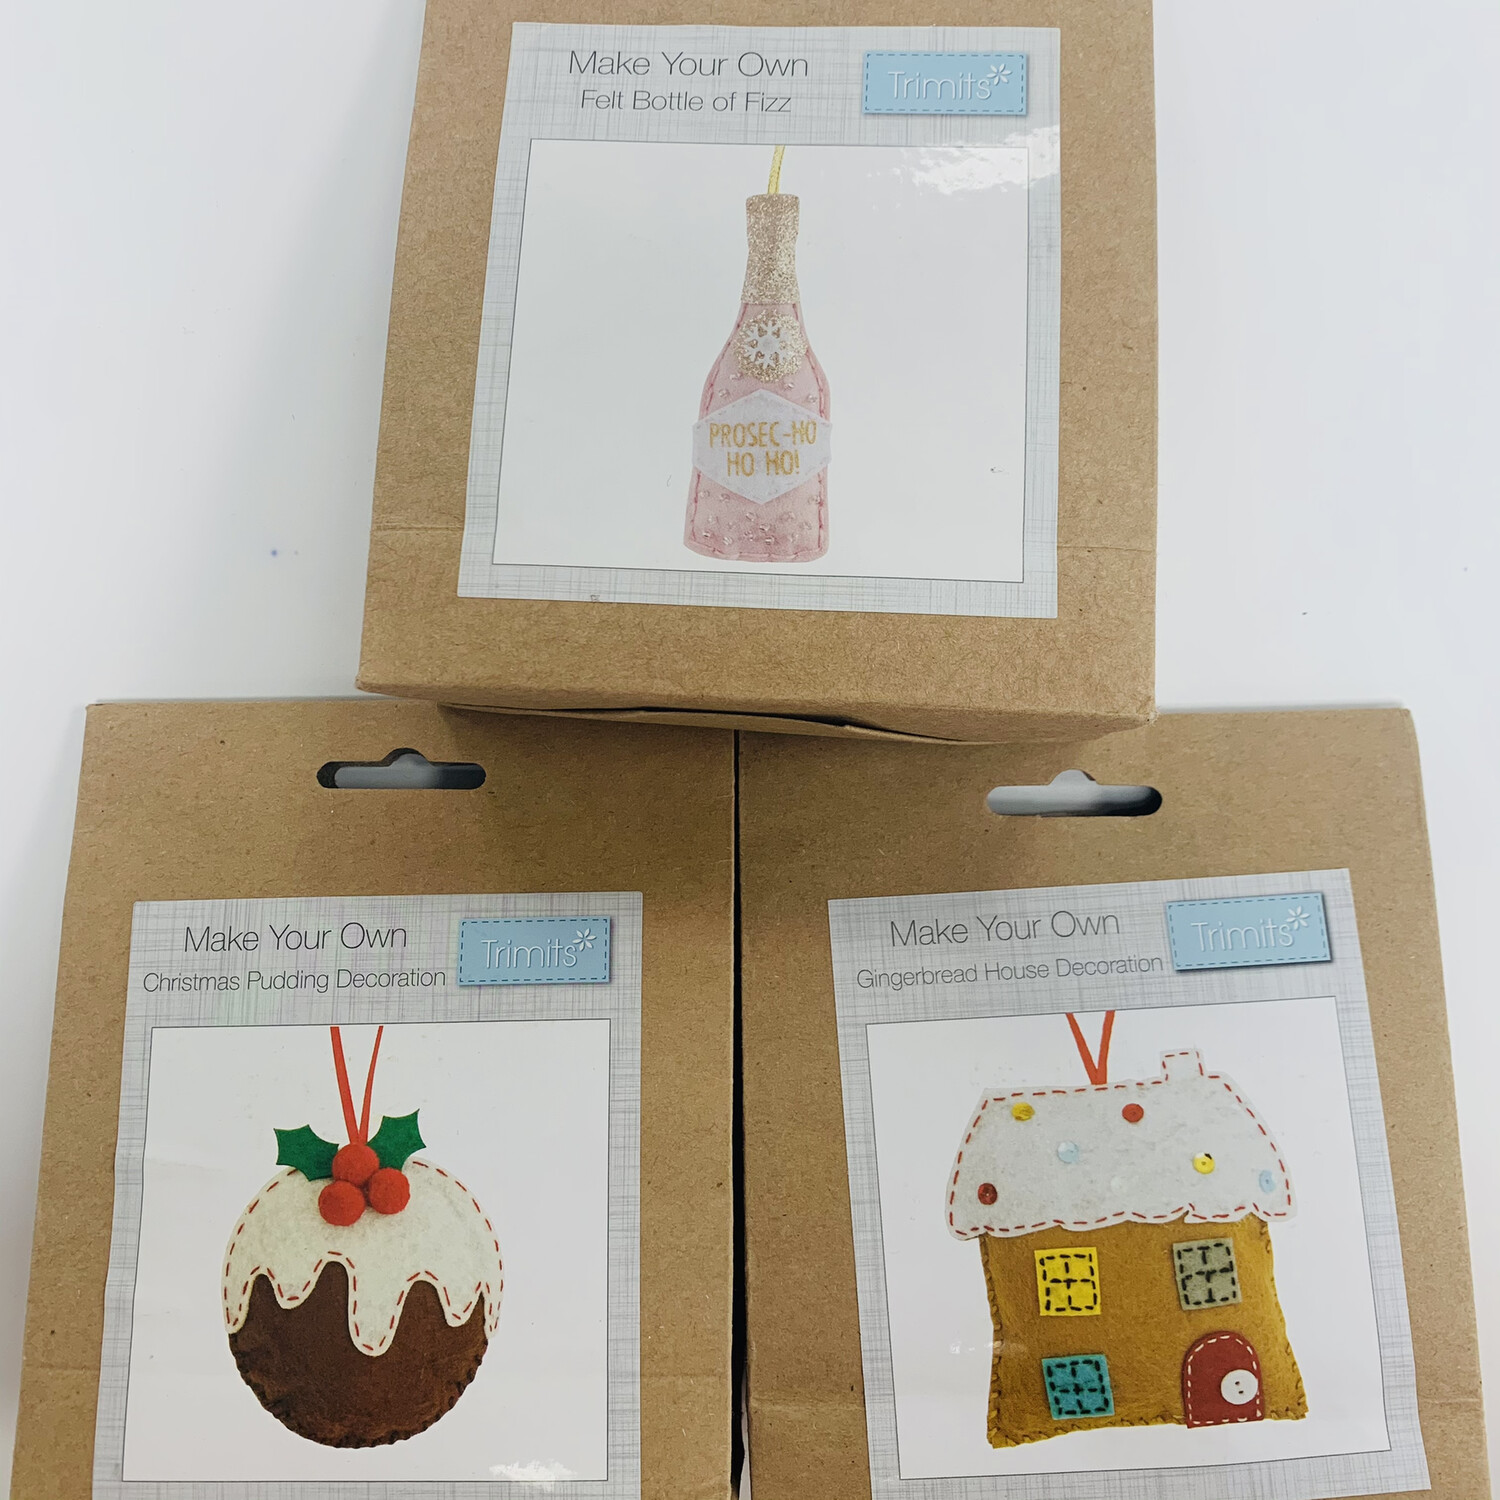 Pack of 3 Trimits Felt Make Your Own Christmas Decorations - Gingerbread House, Christmas Pudding, Bottle of Fizz